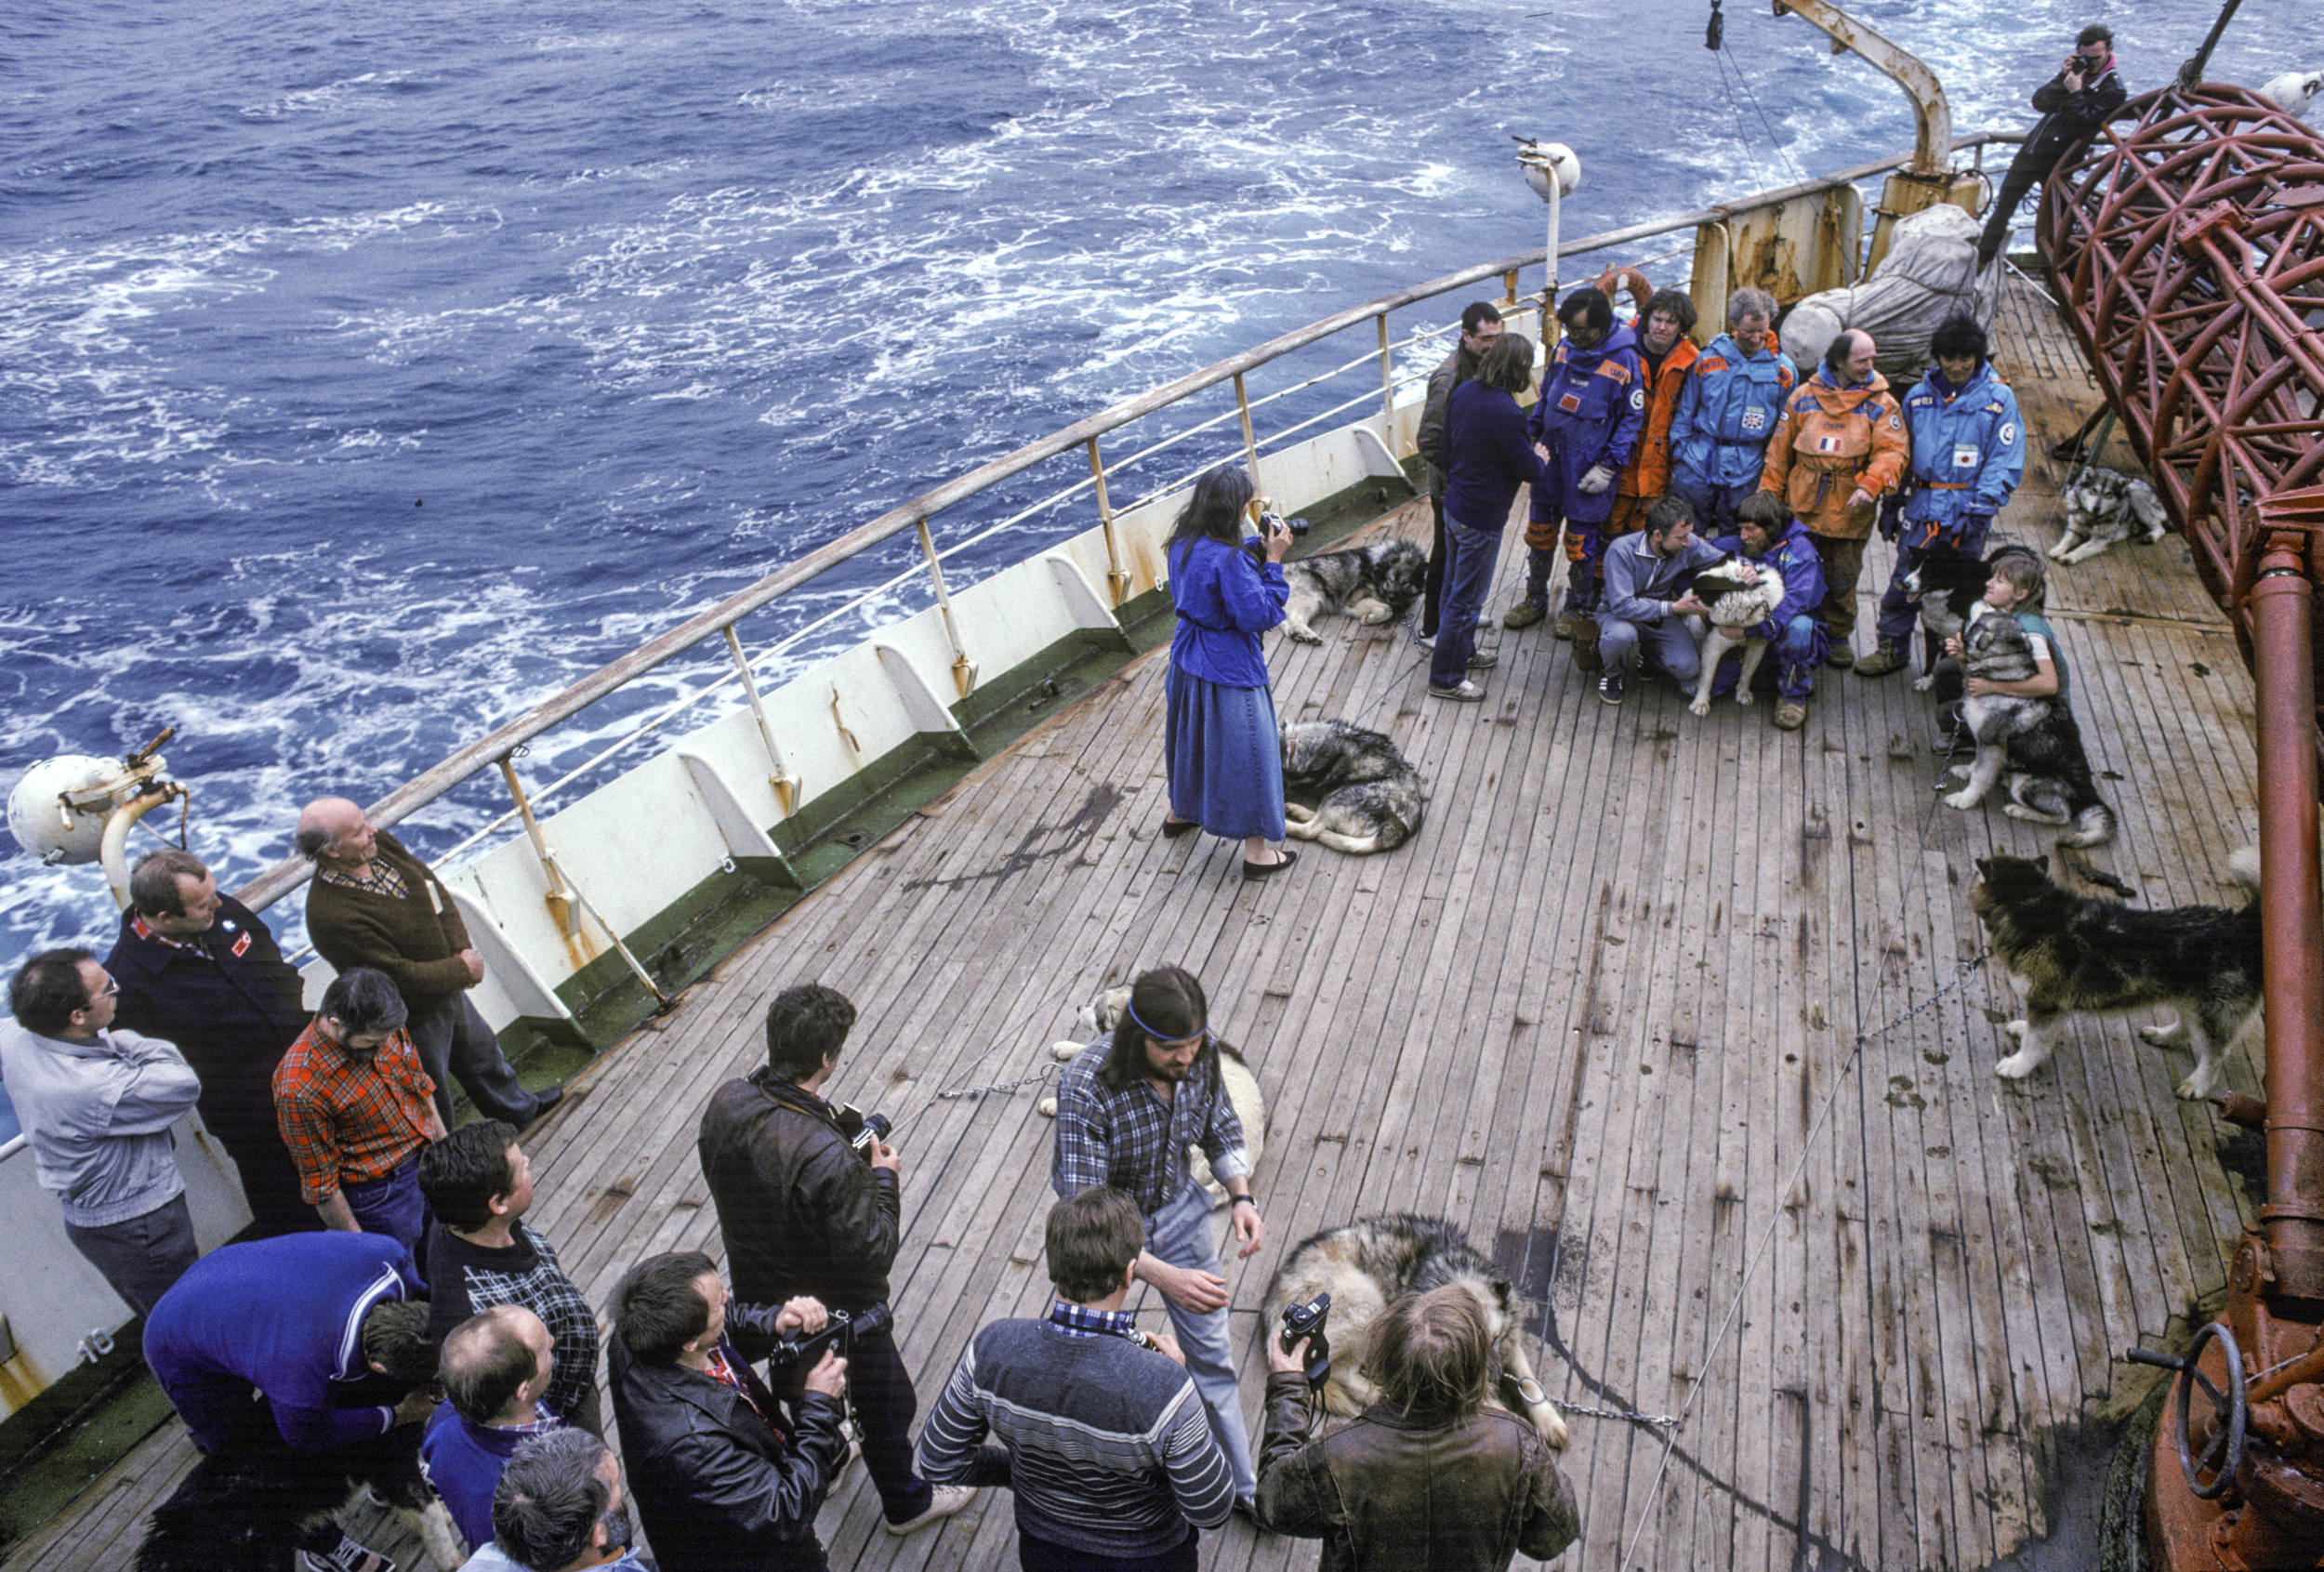 Out in the Indian Ocean, Jacqui takes photos of the team, March 1990 ©Trans-Antarctica photo by Per Breiehagen